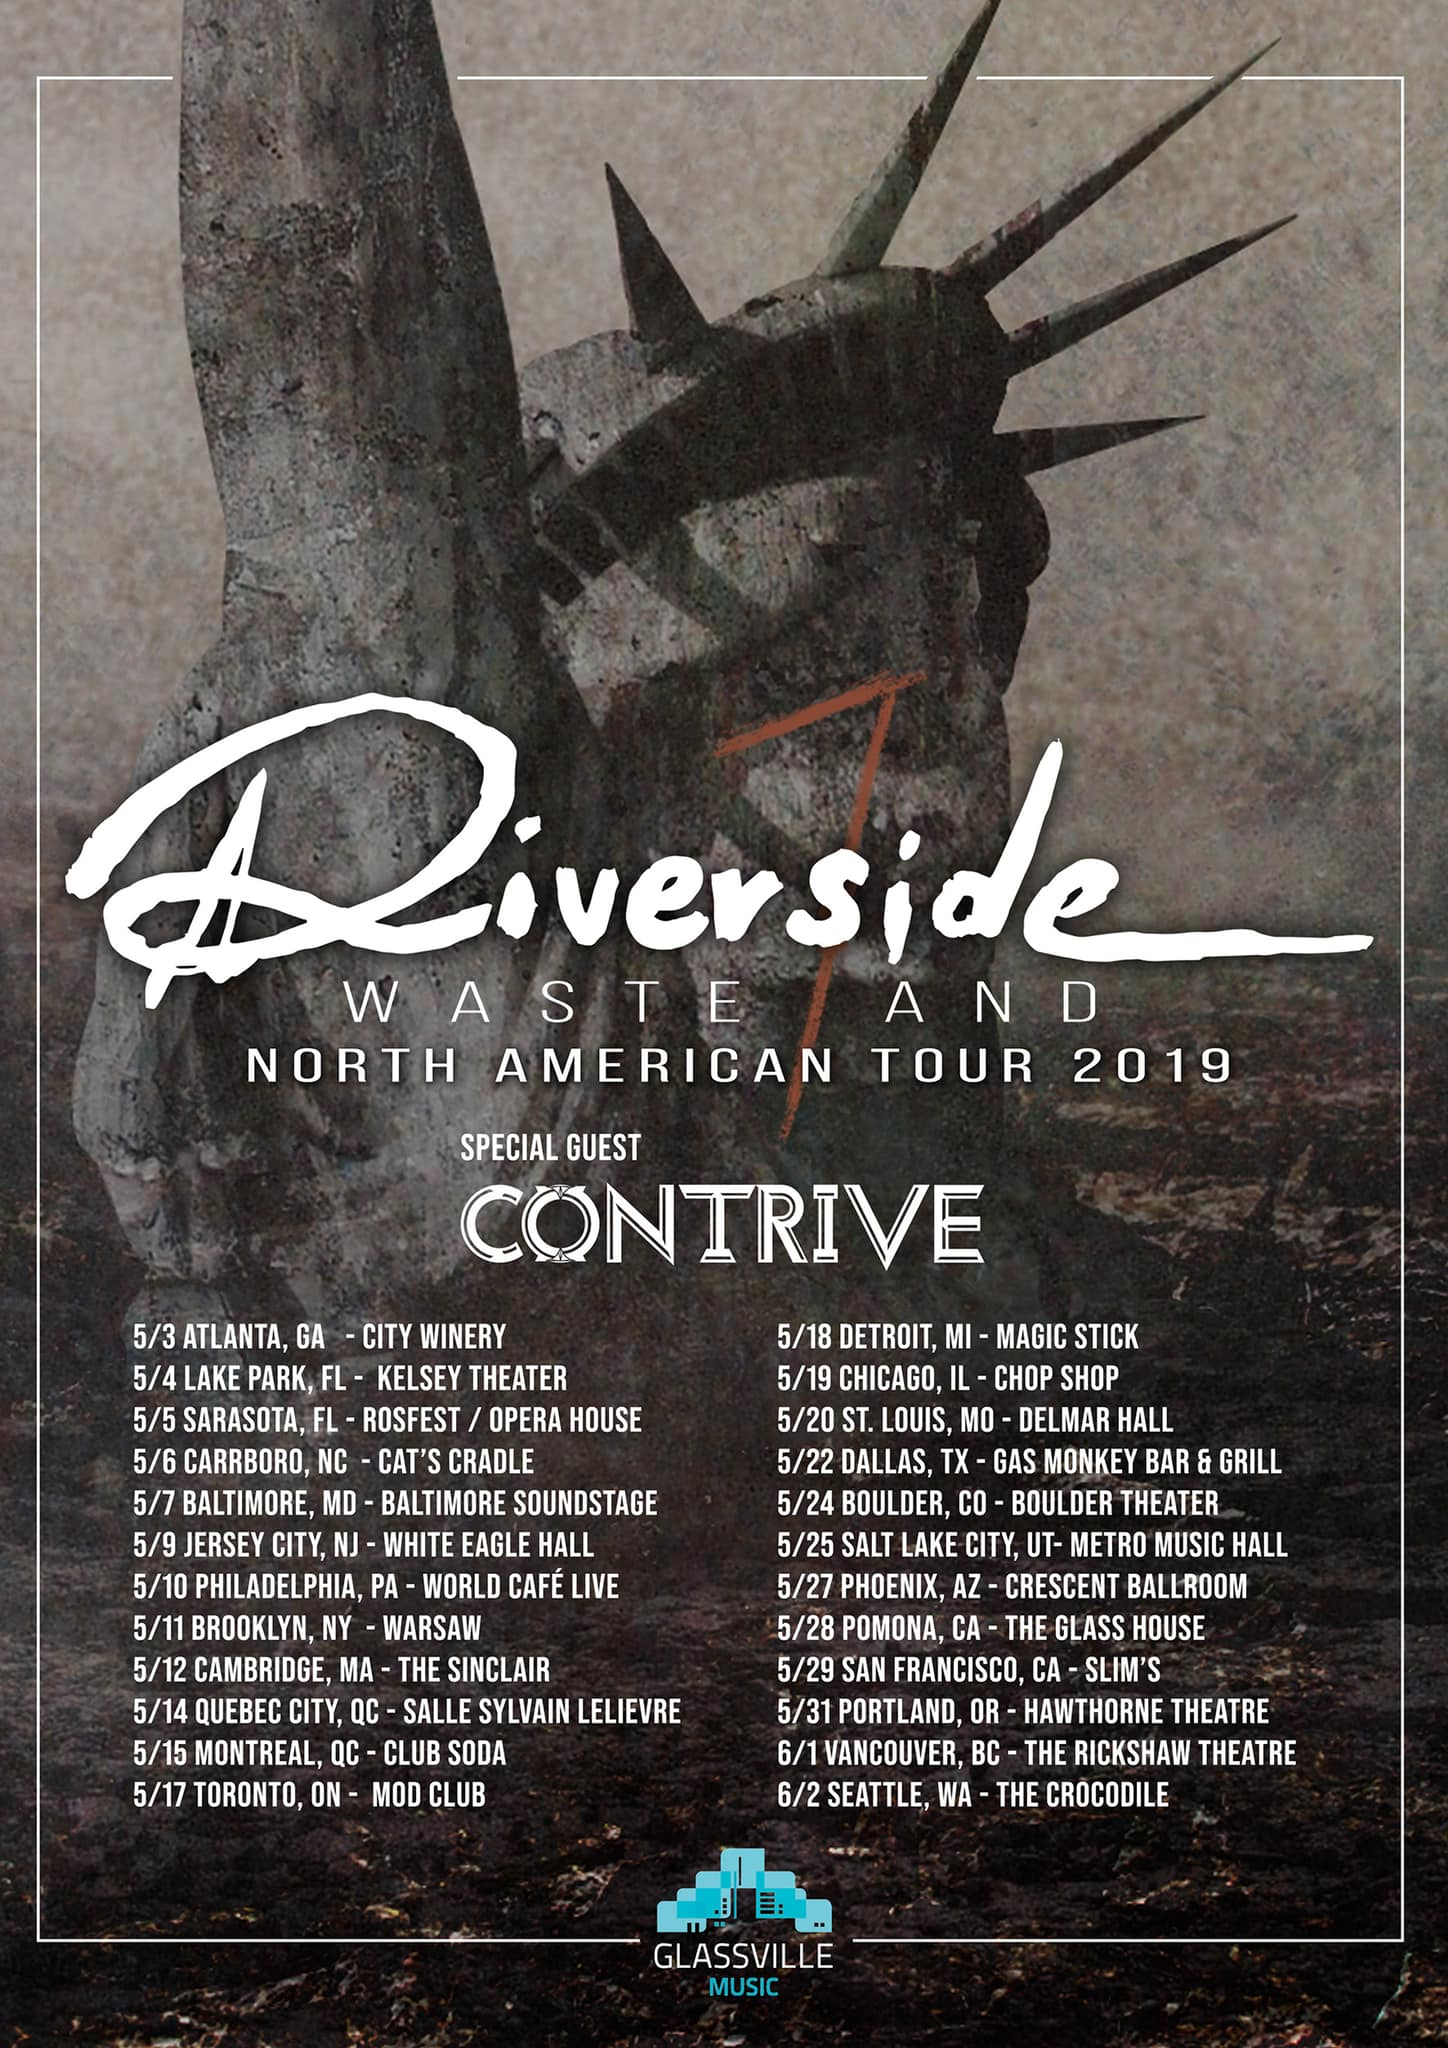 Aaaaaand... here we go again: Wasteland North American Tour 2019